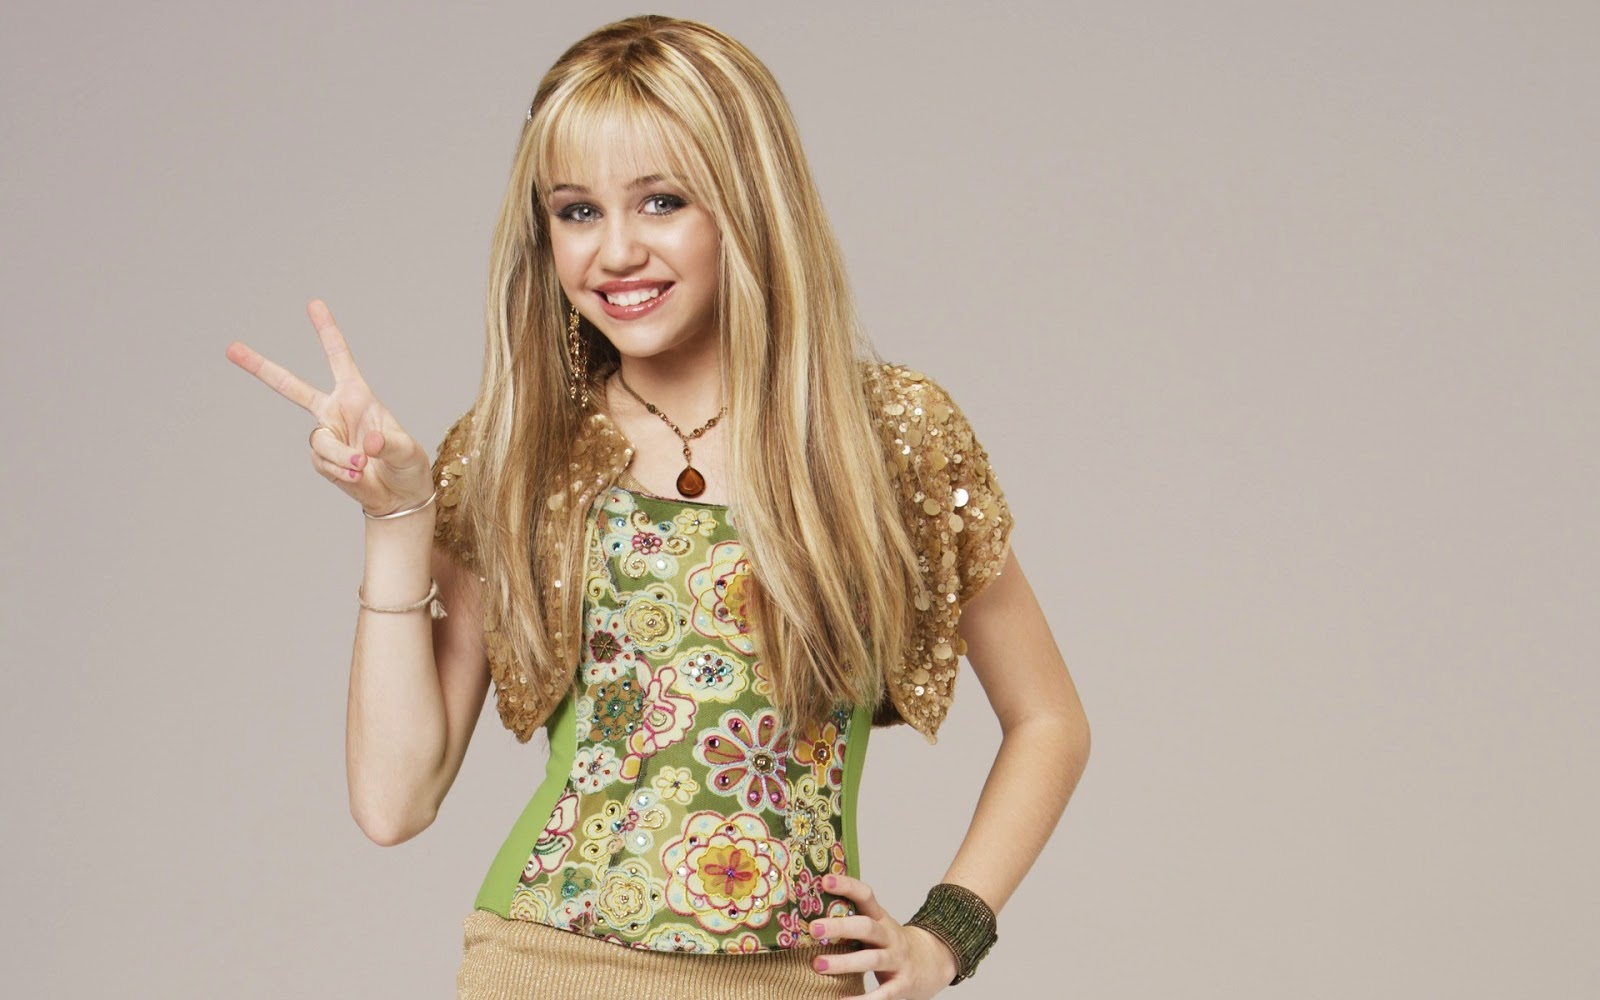 Miley Cyrus: Miley Cyrus Latest HD Wallpapers 2013